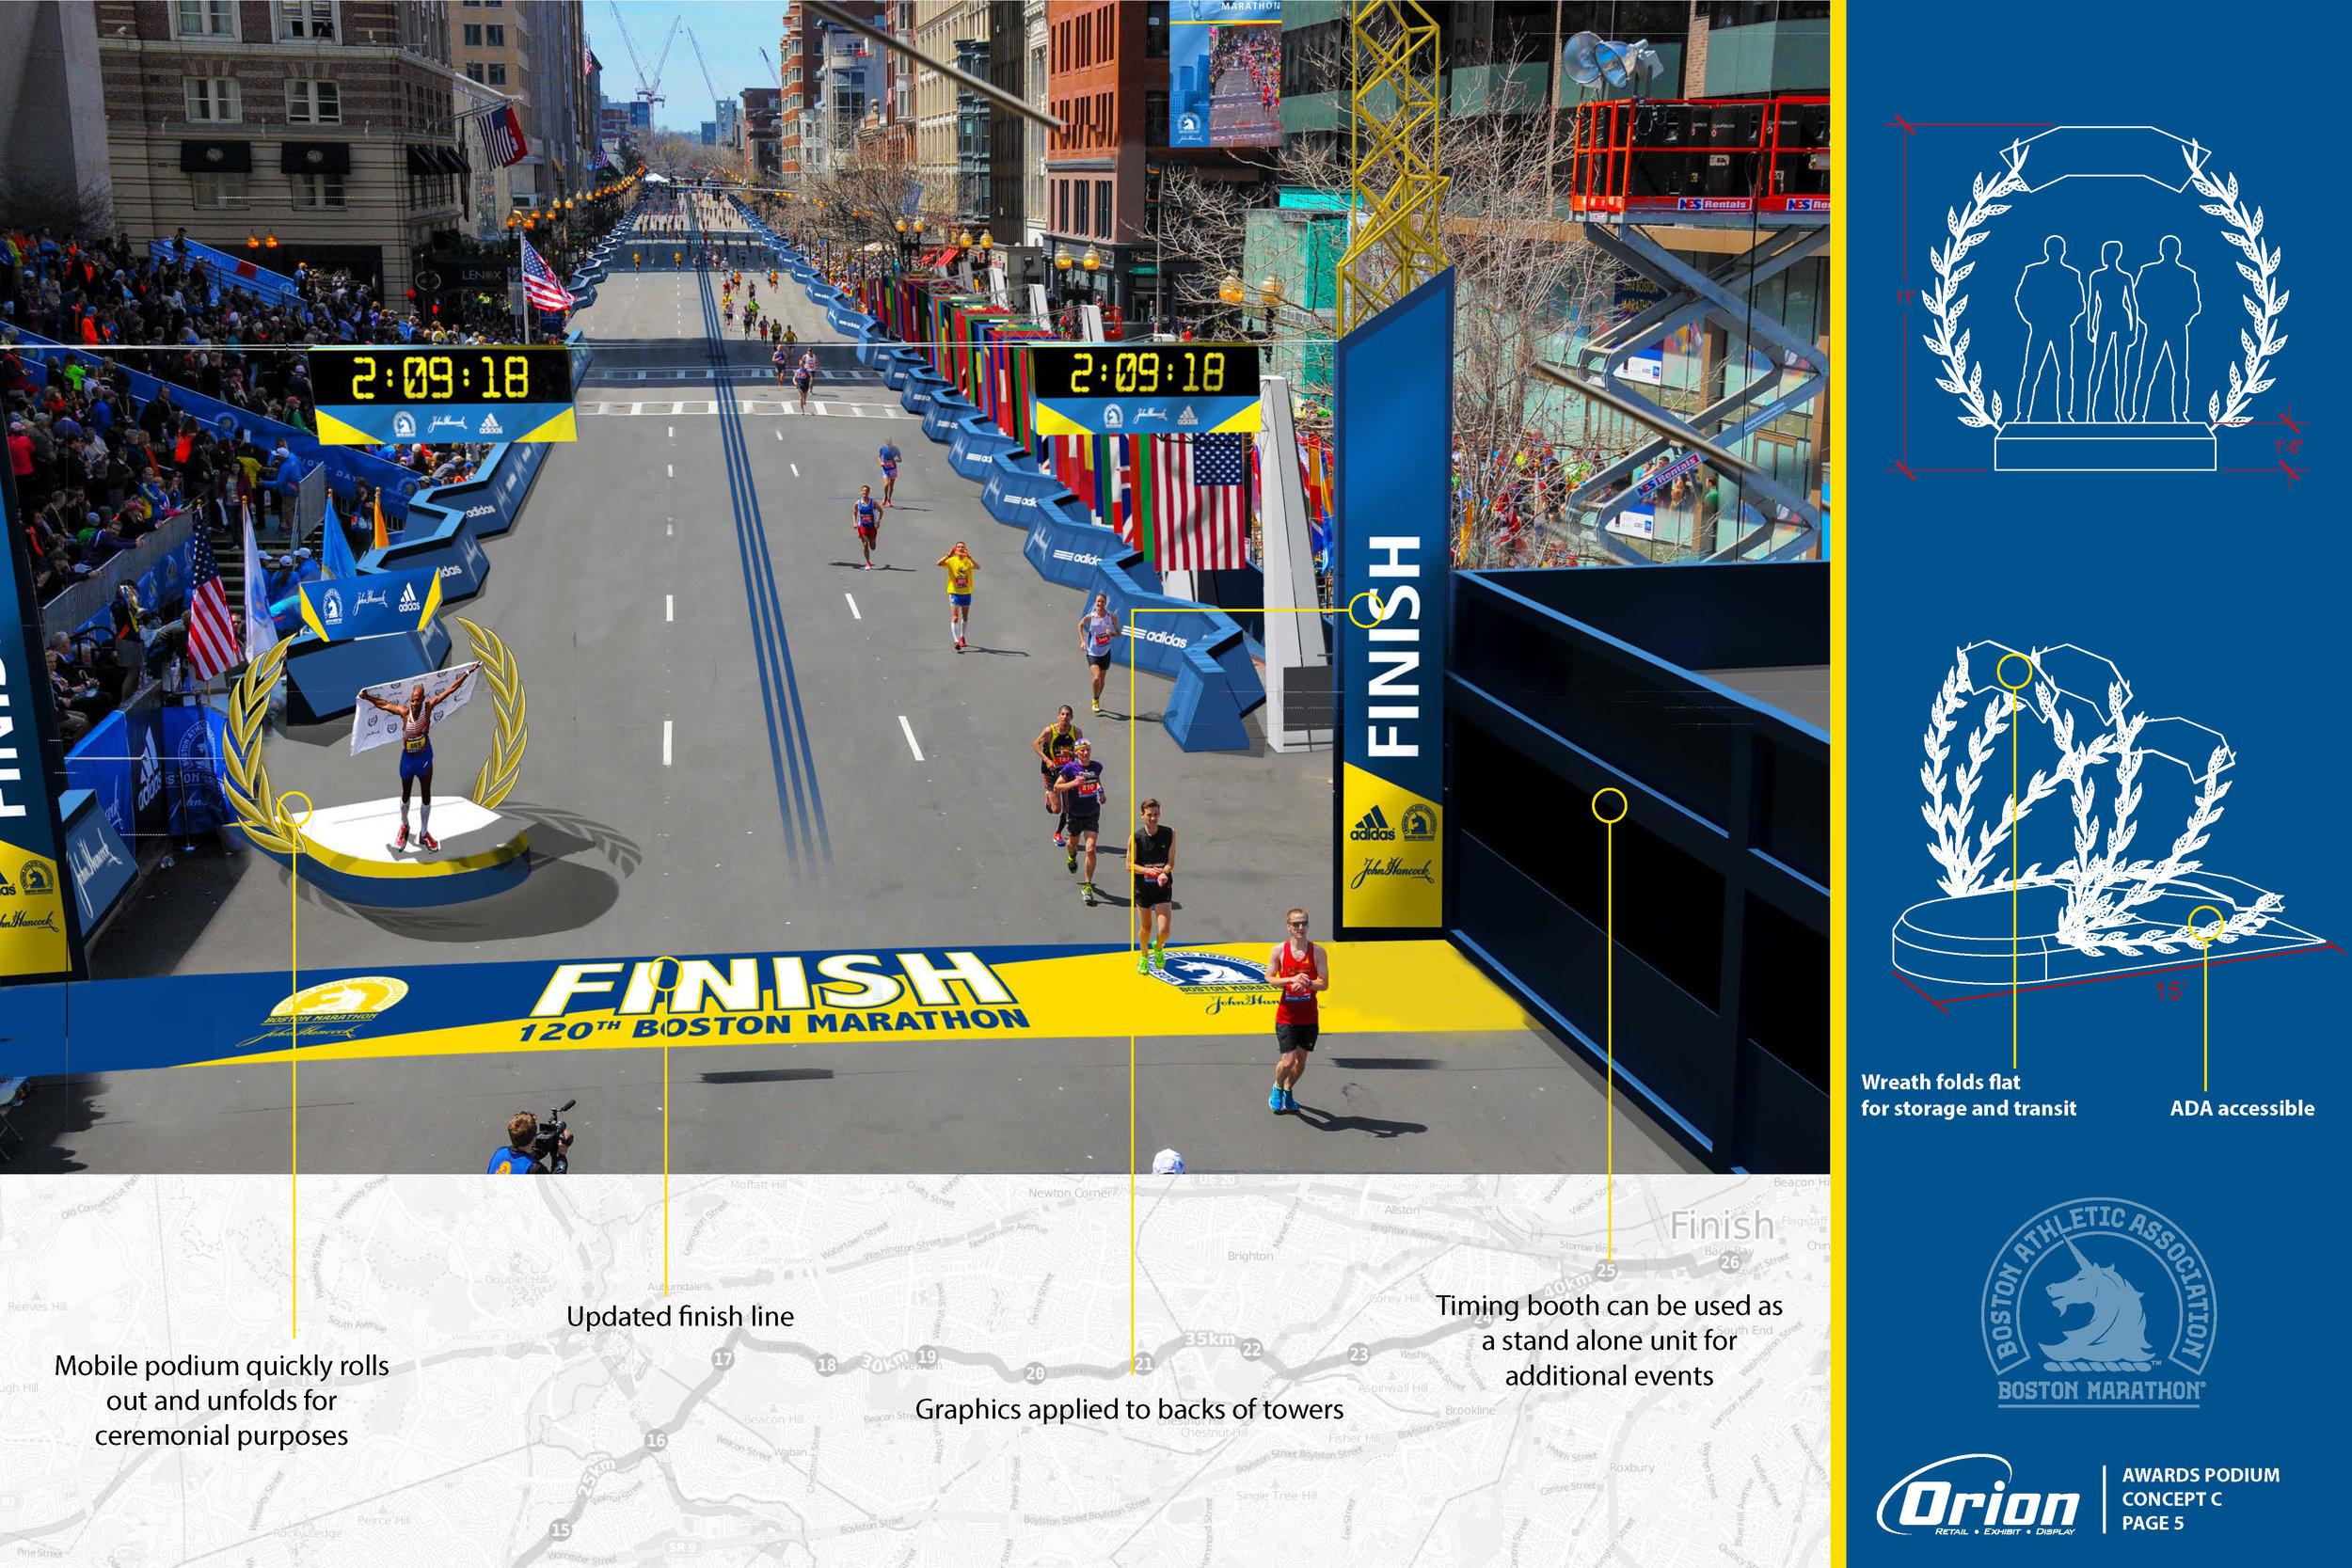 Pages from BostonMarathon%20Presentation_Concept%20C-LR_Page_5.jpg